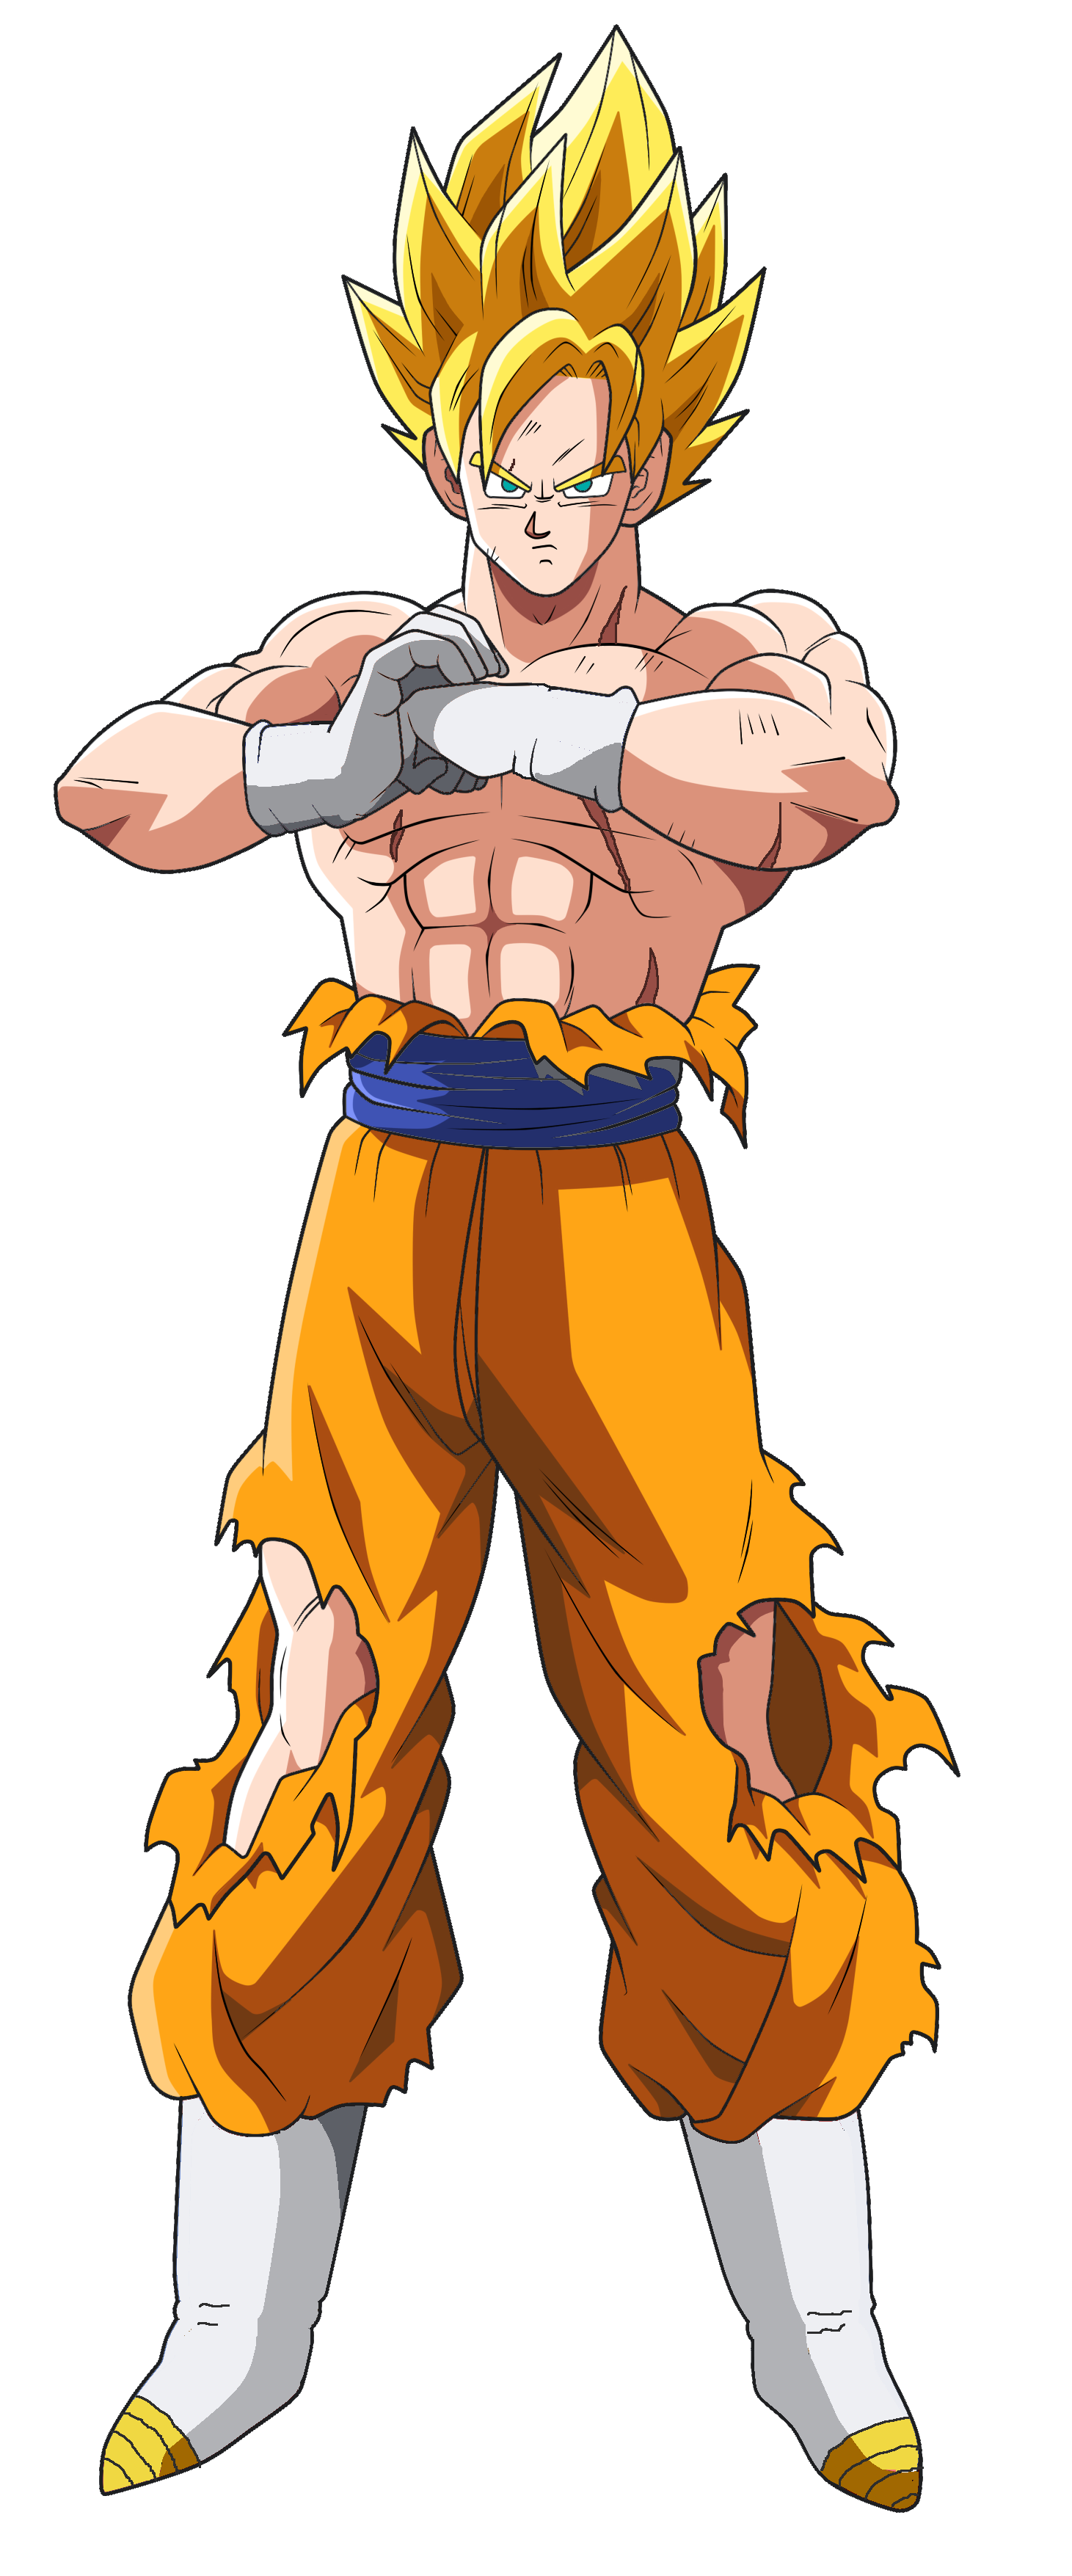 Son goku universo 22 dragon ball fanon wiki - Dragon ball z goku son ...